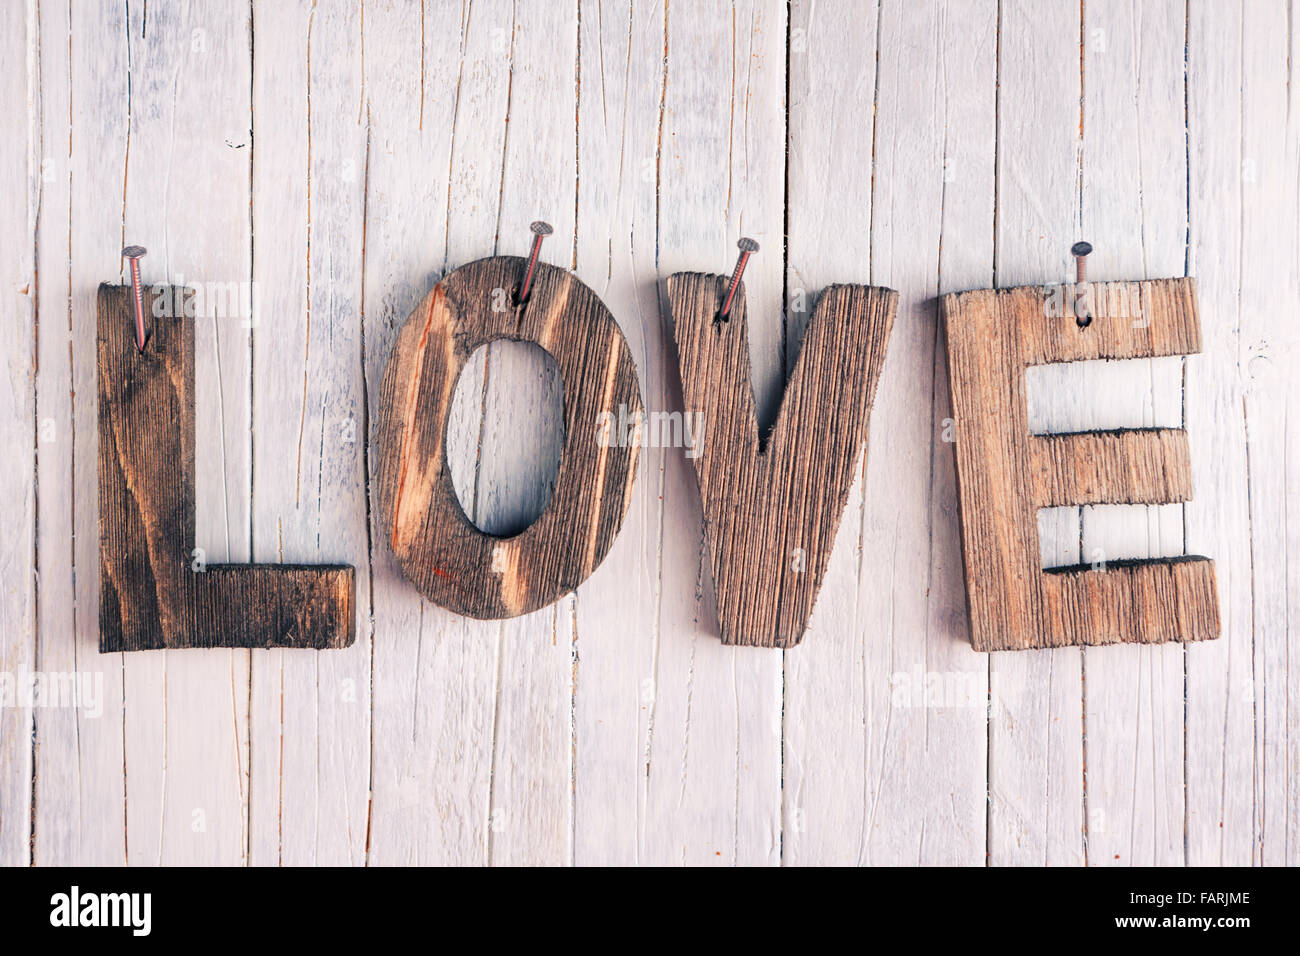 The Word Love In Wooden Letters Nailed On A Rustic Background